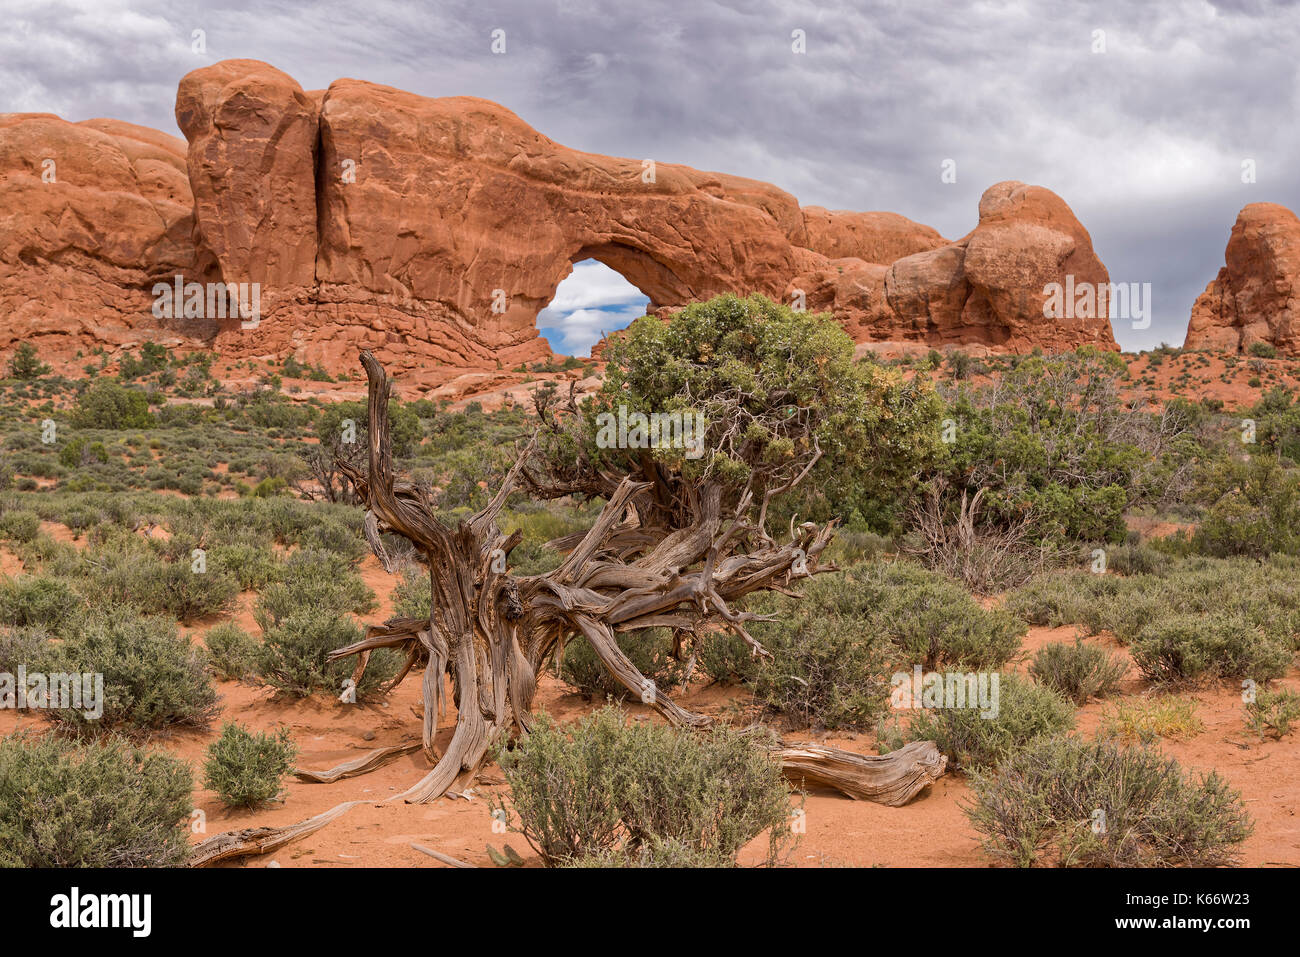 Arches of red rock. Arches National Park, Moab, United States of America. Geologic Formations - Stock Image